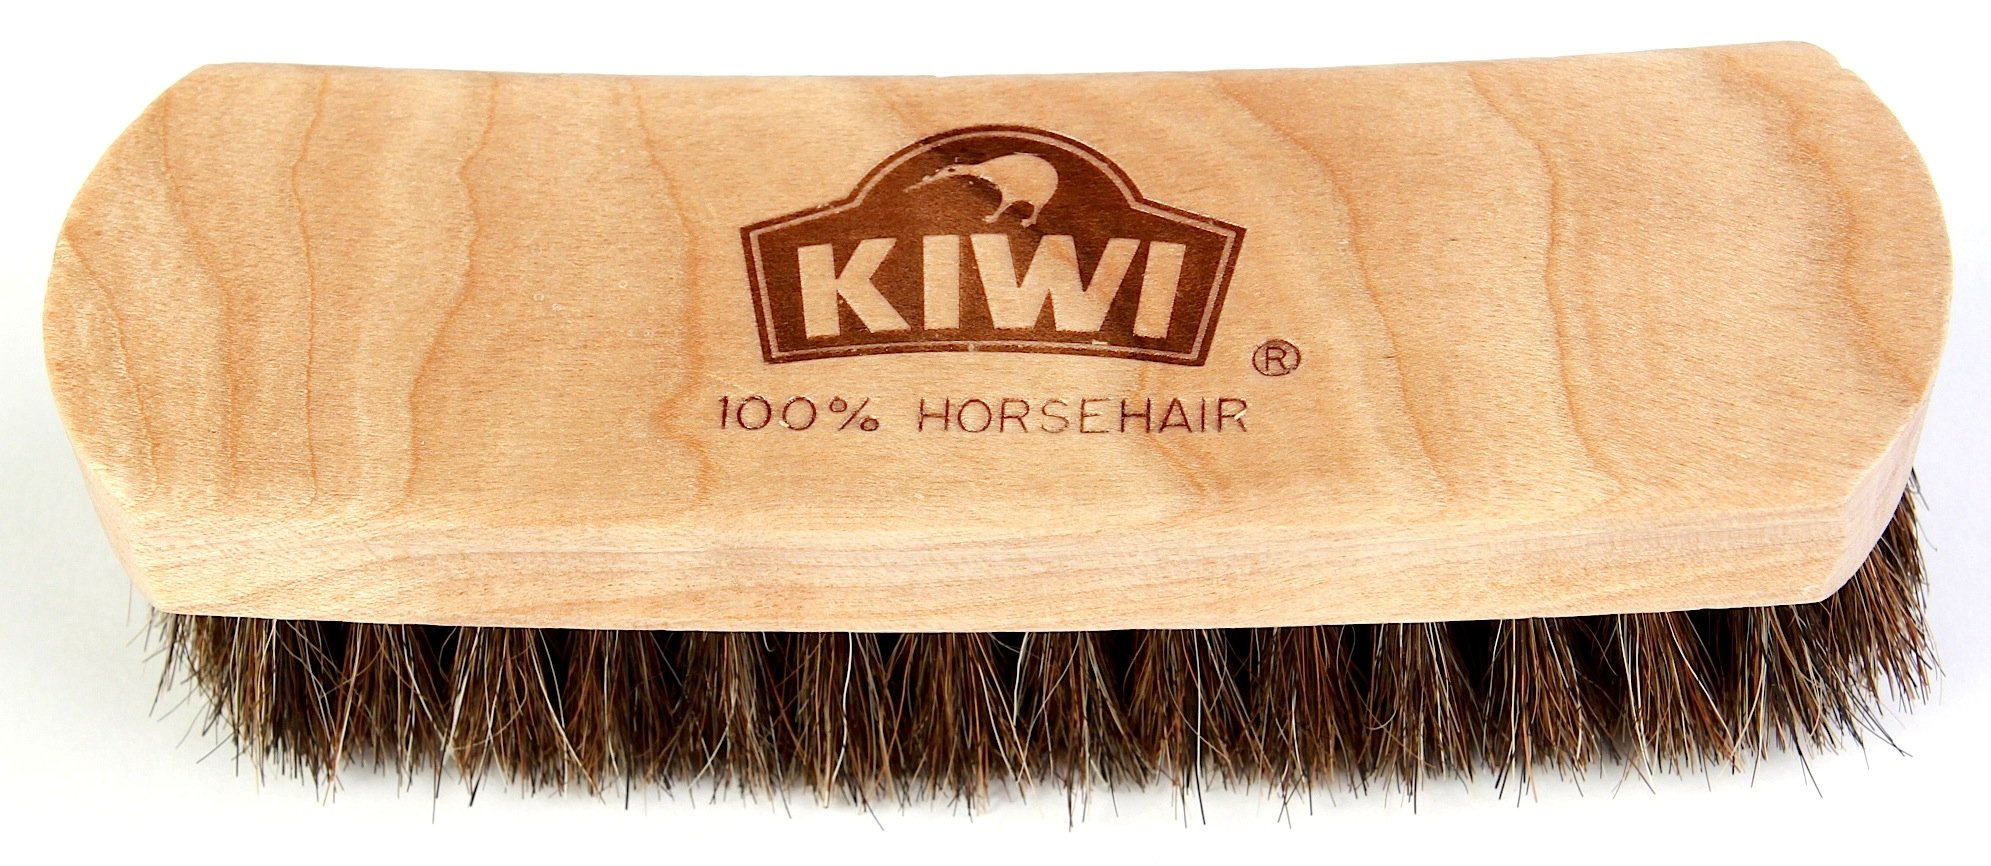 Kiwi Leather Shine Horsehair Brush, 24-Pack by Kiwi